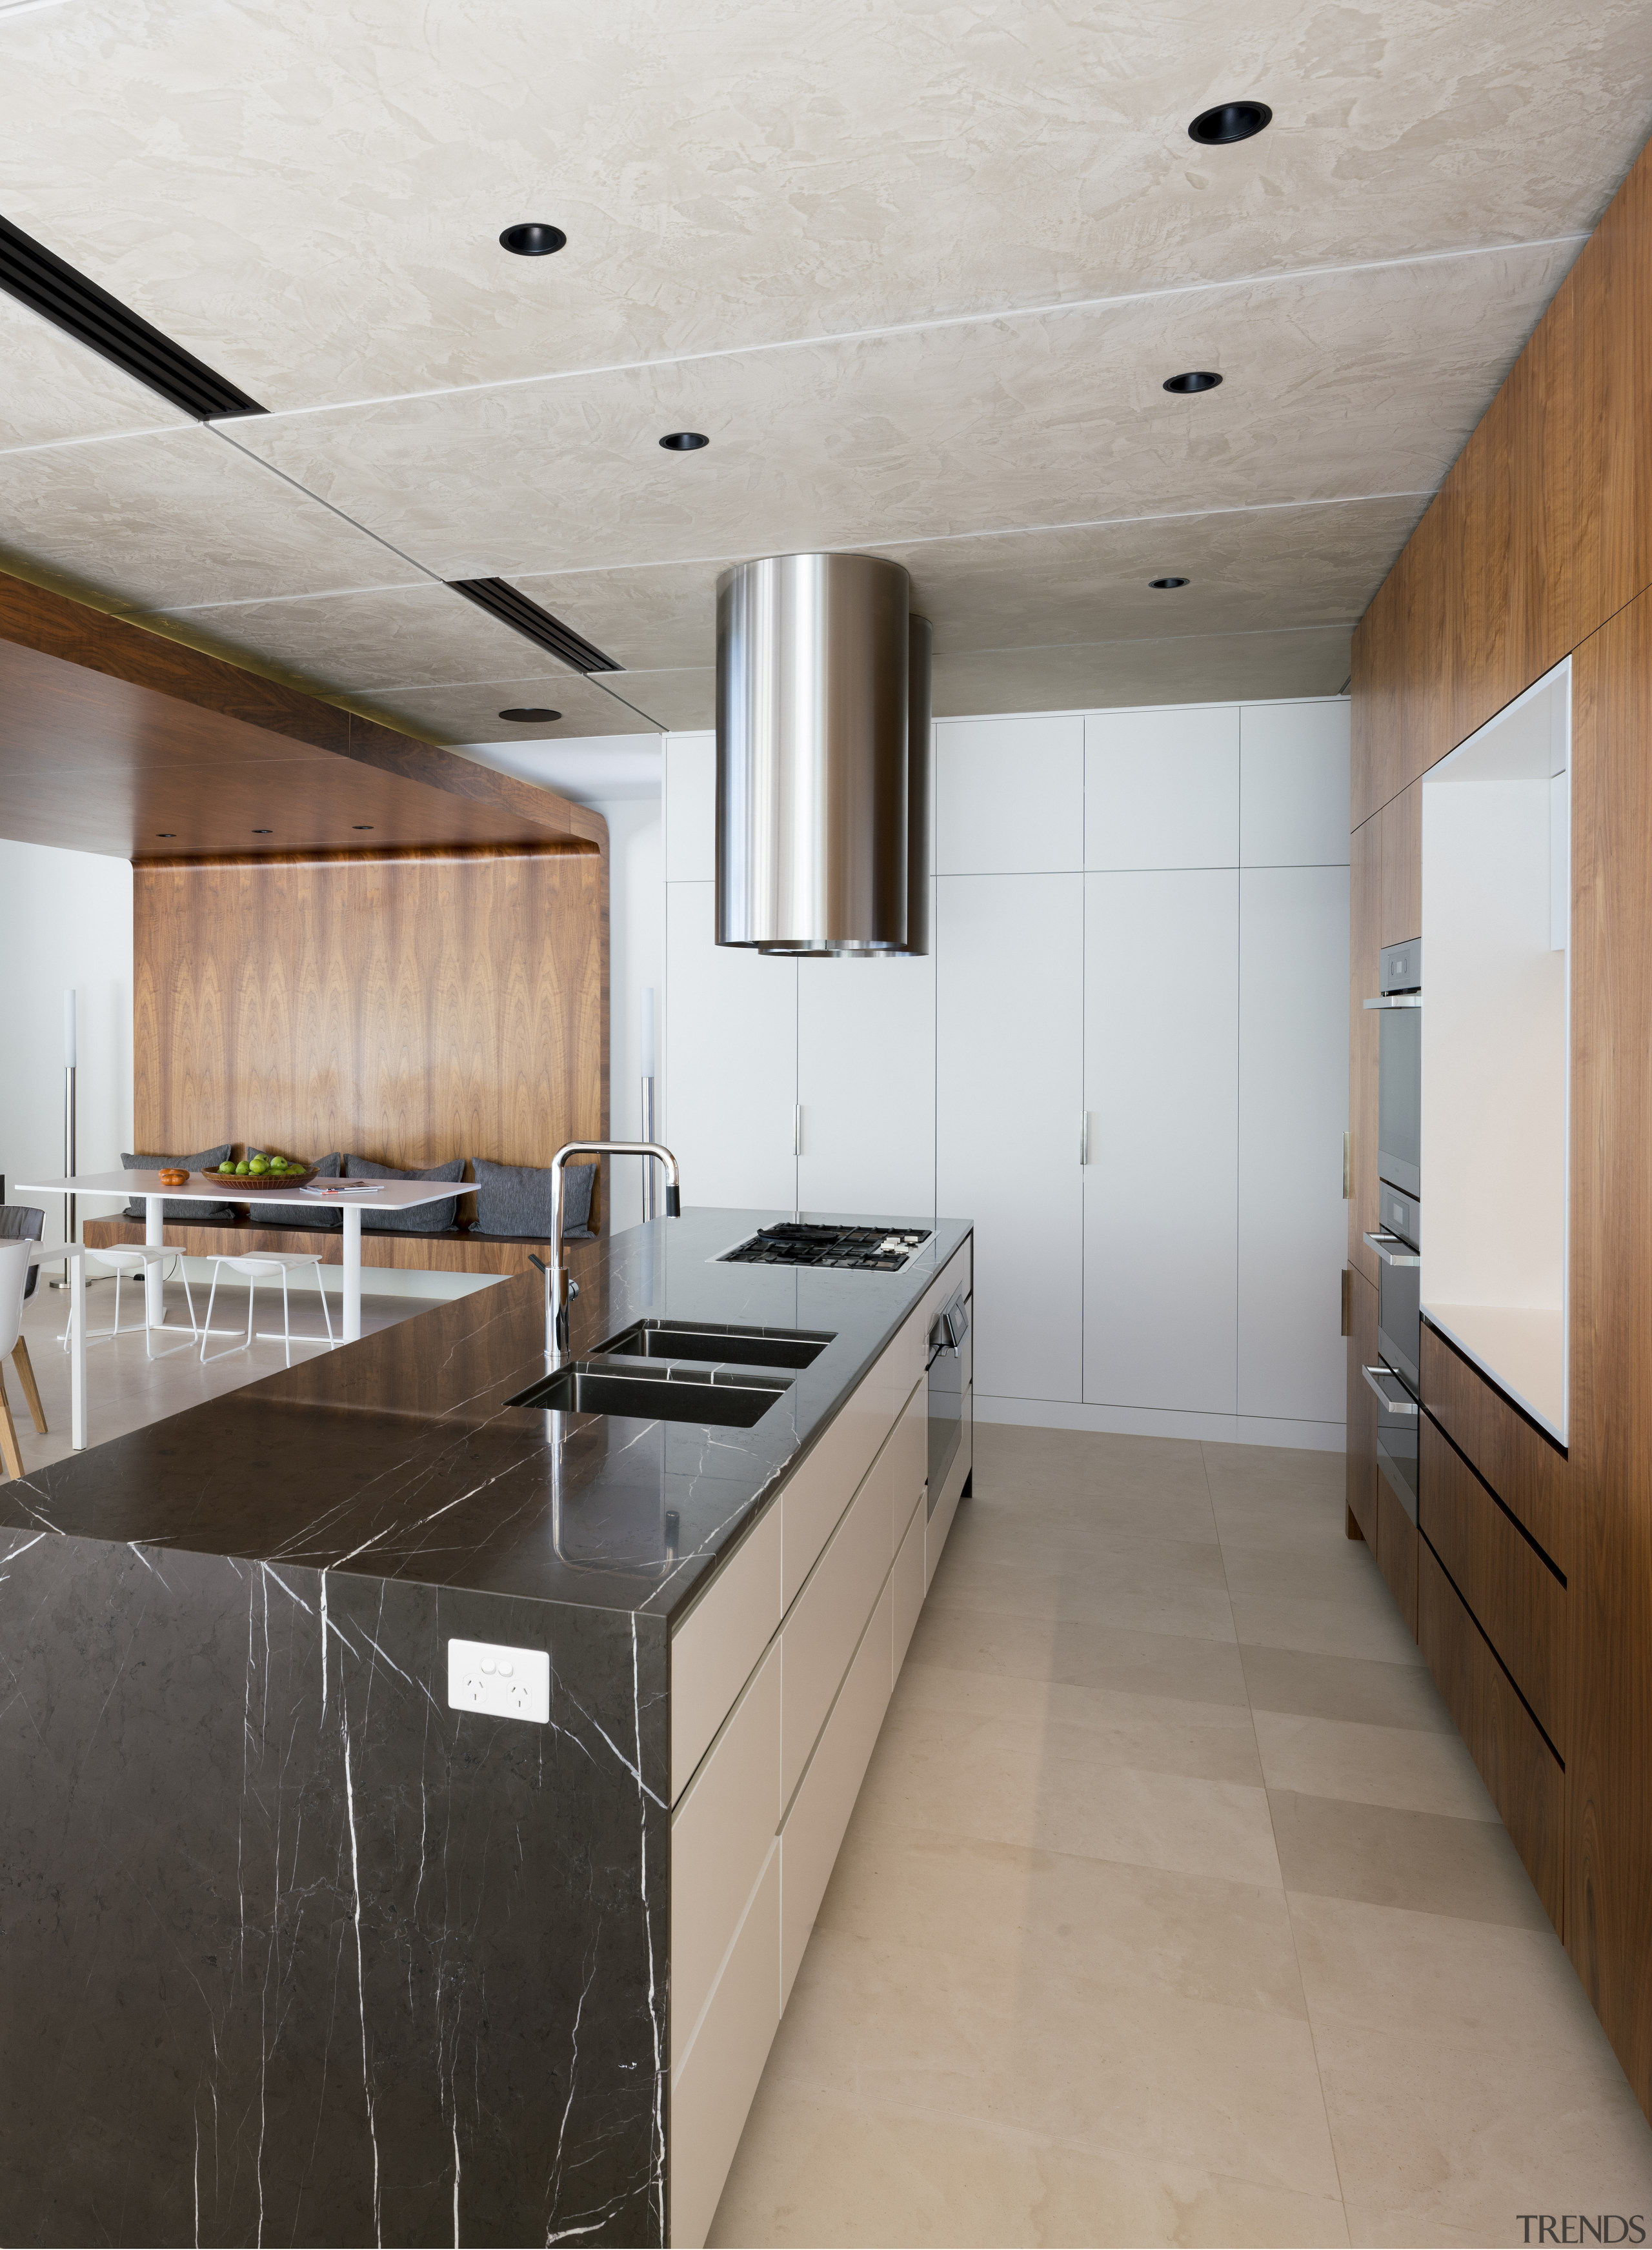 While this kitchen's components are designed to present architecture, cabinetry, ceiling, countertop, cuisine classique, floor, flooring, house, interior design, kitchen, real estate, room, wood flooring, gray